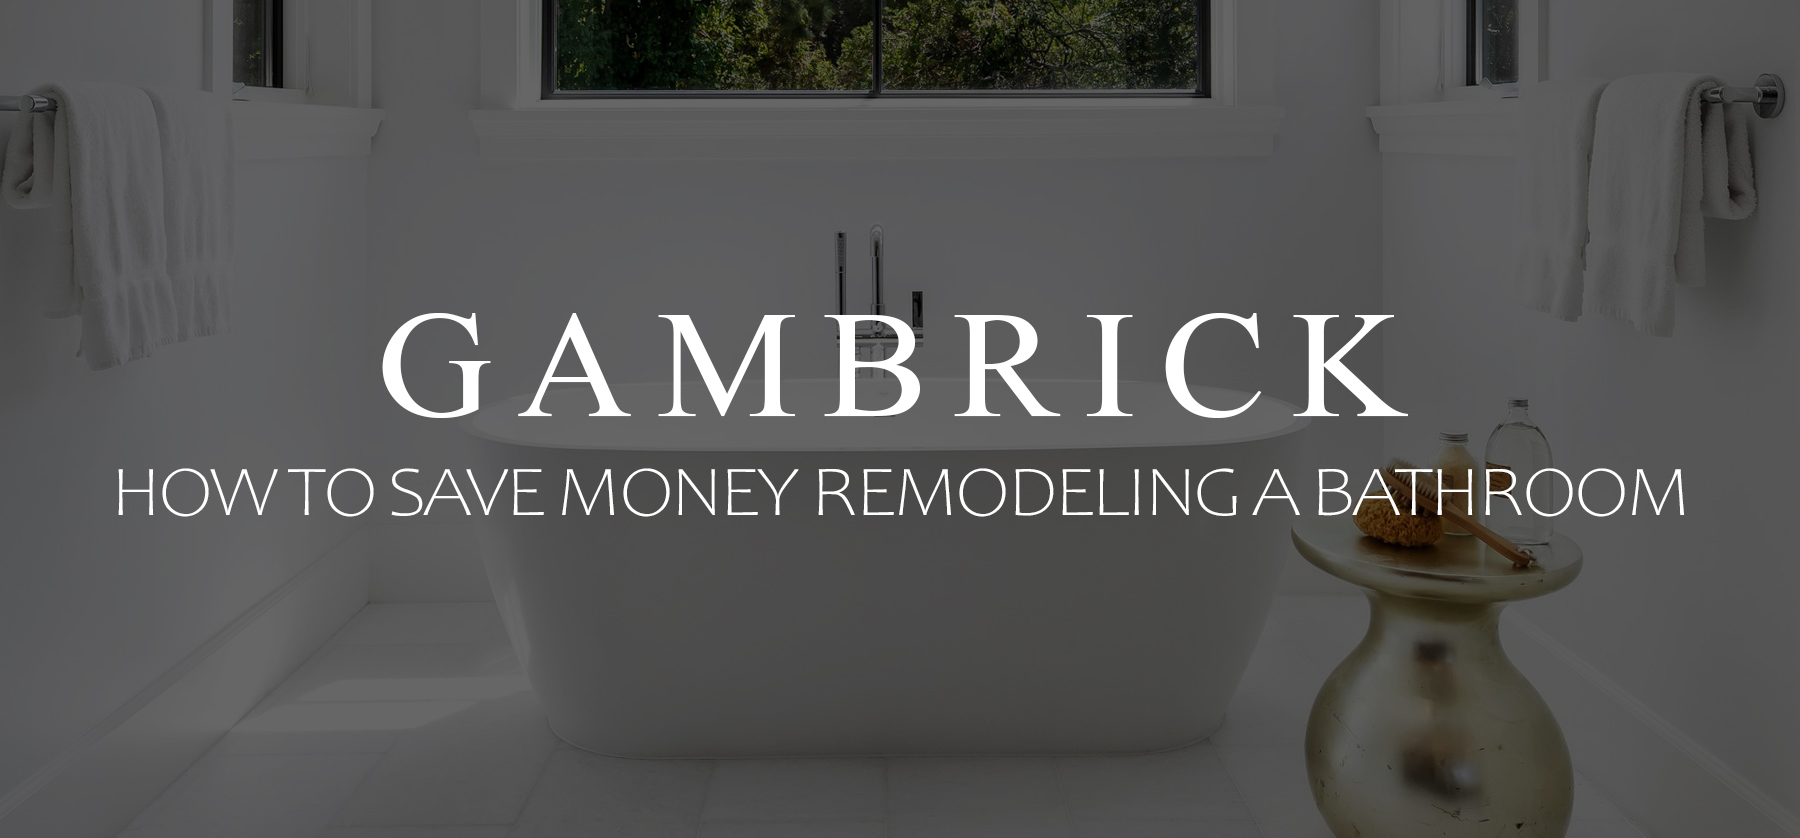 how to save money remodeling a bathroom banner pic